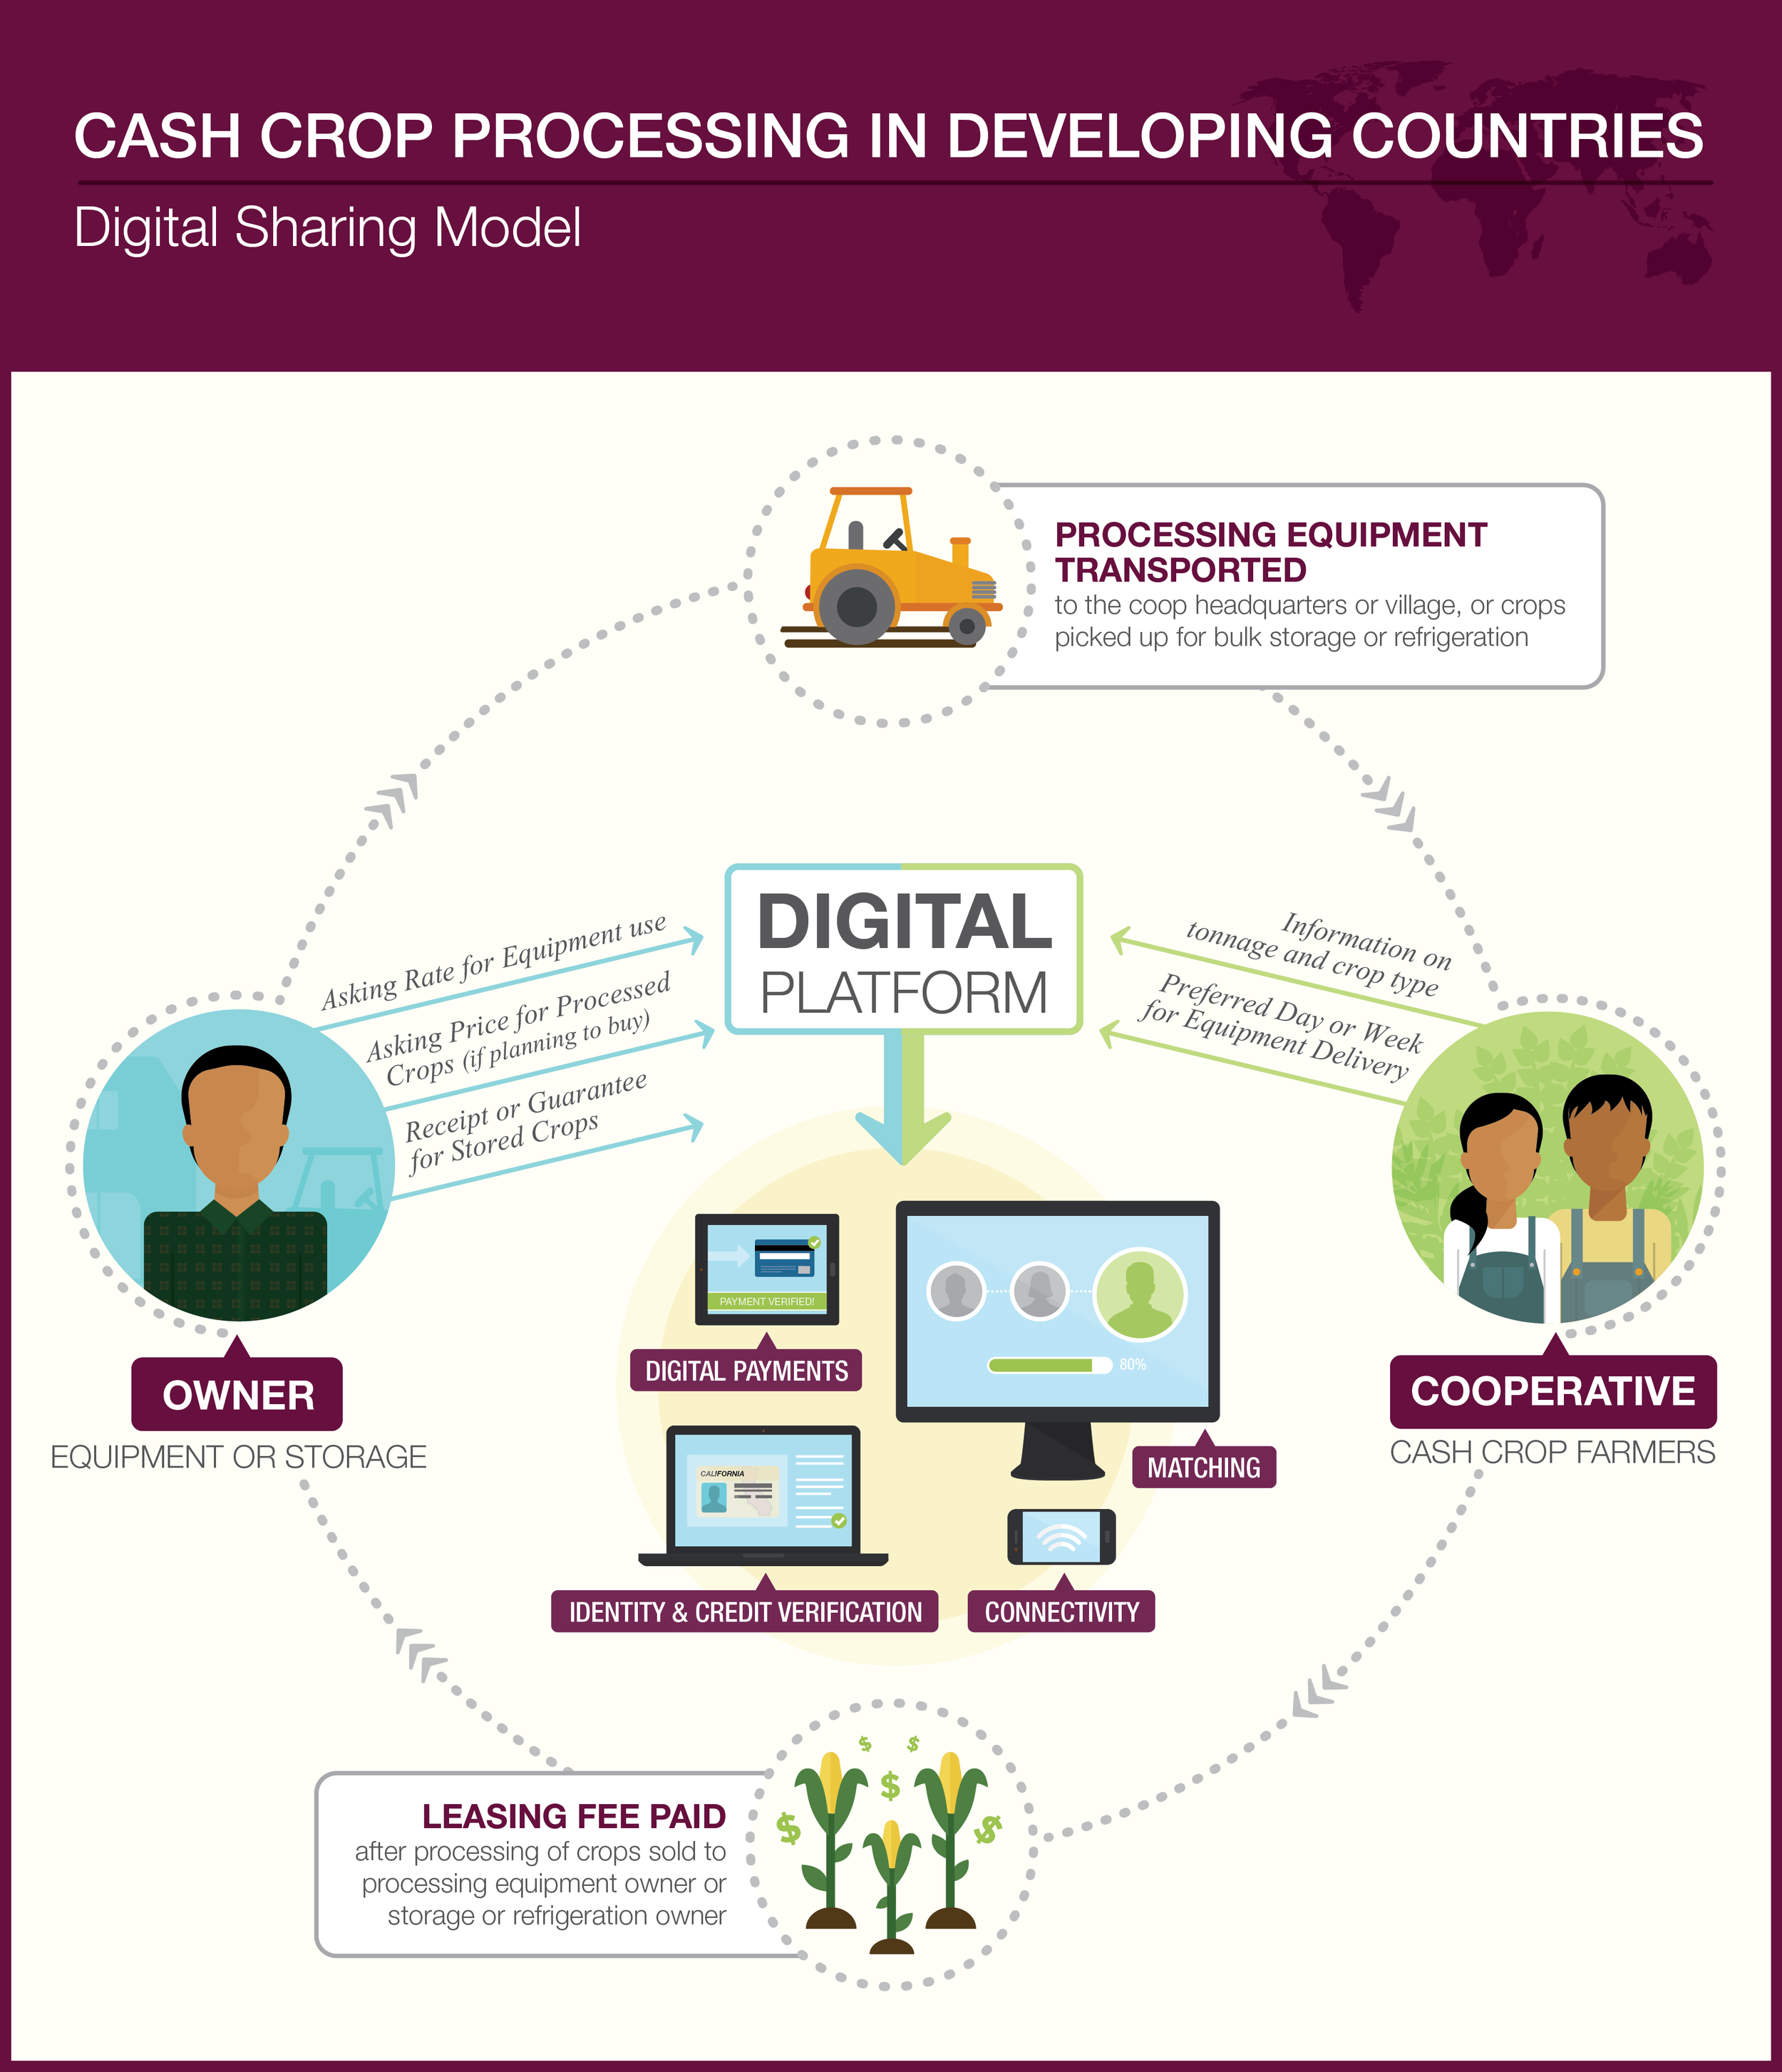 Digital Sharing Model: Cash Crop Processing in Developing Countries